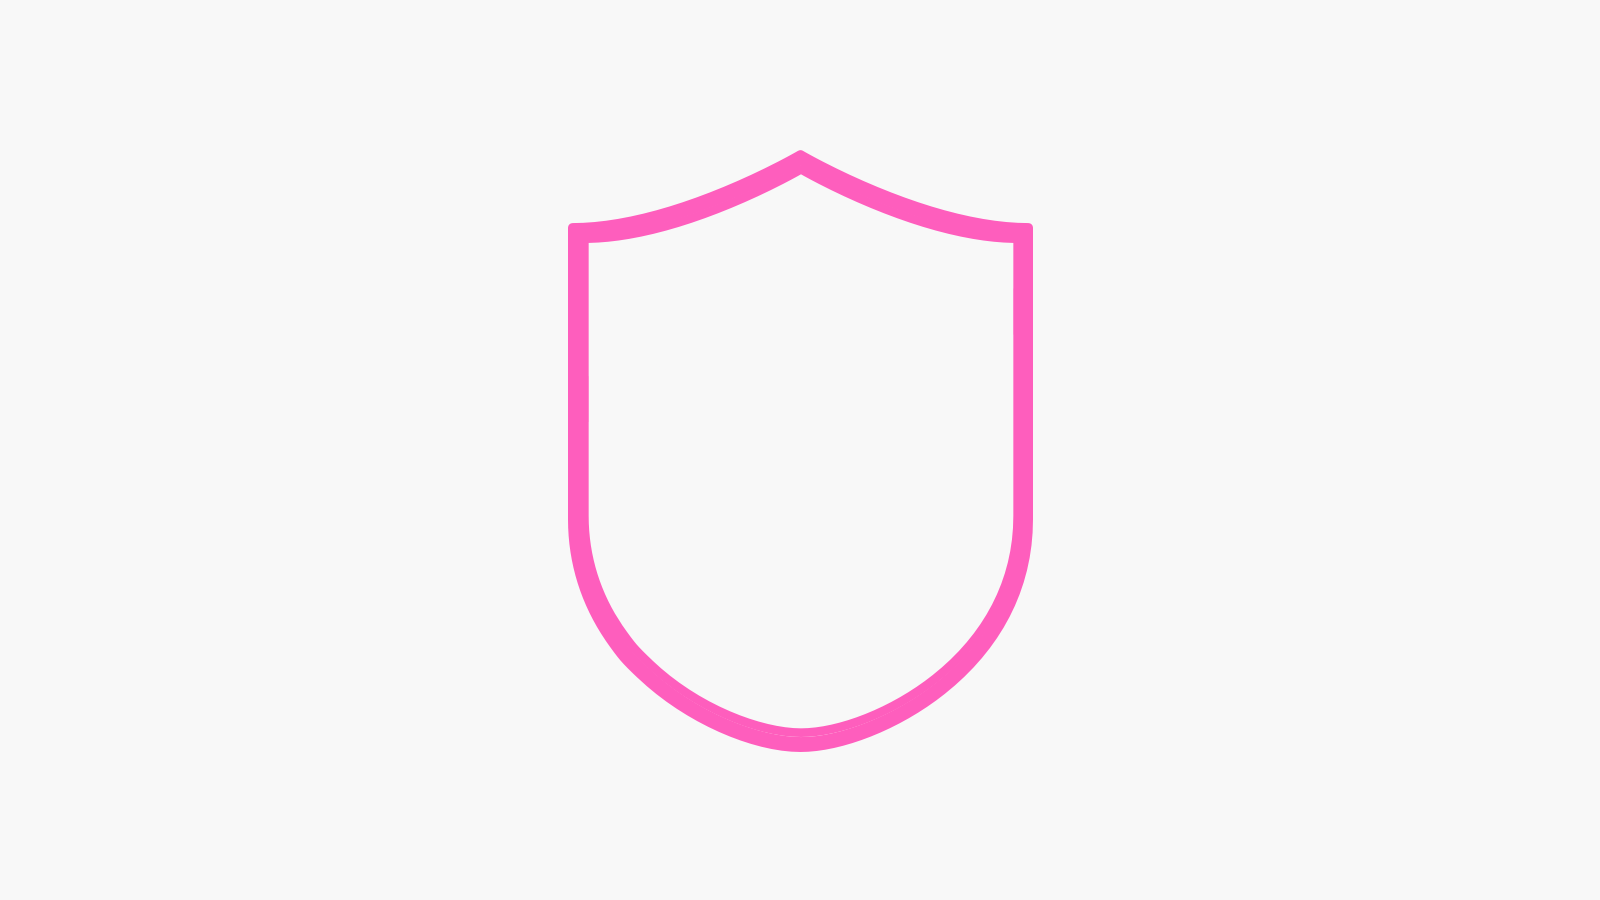 Pink shield - grey background